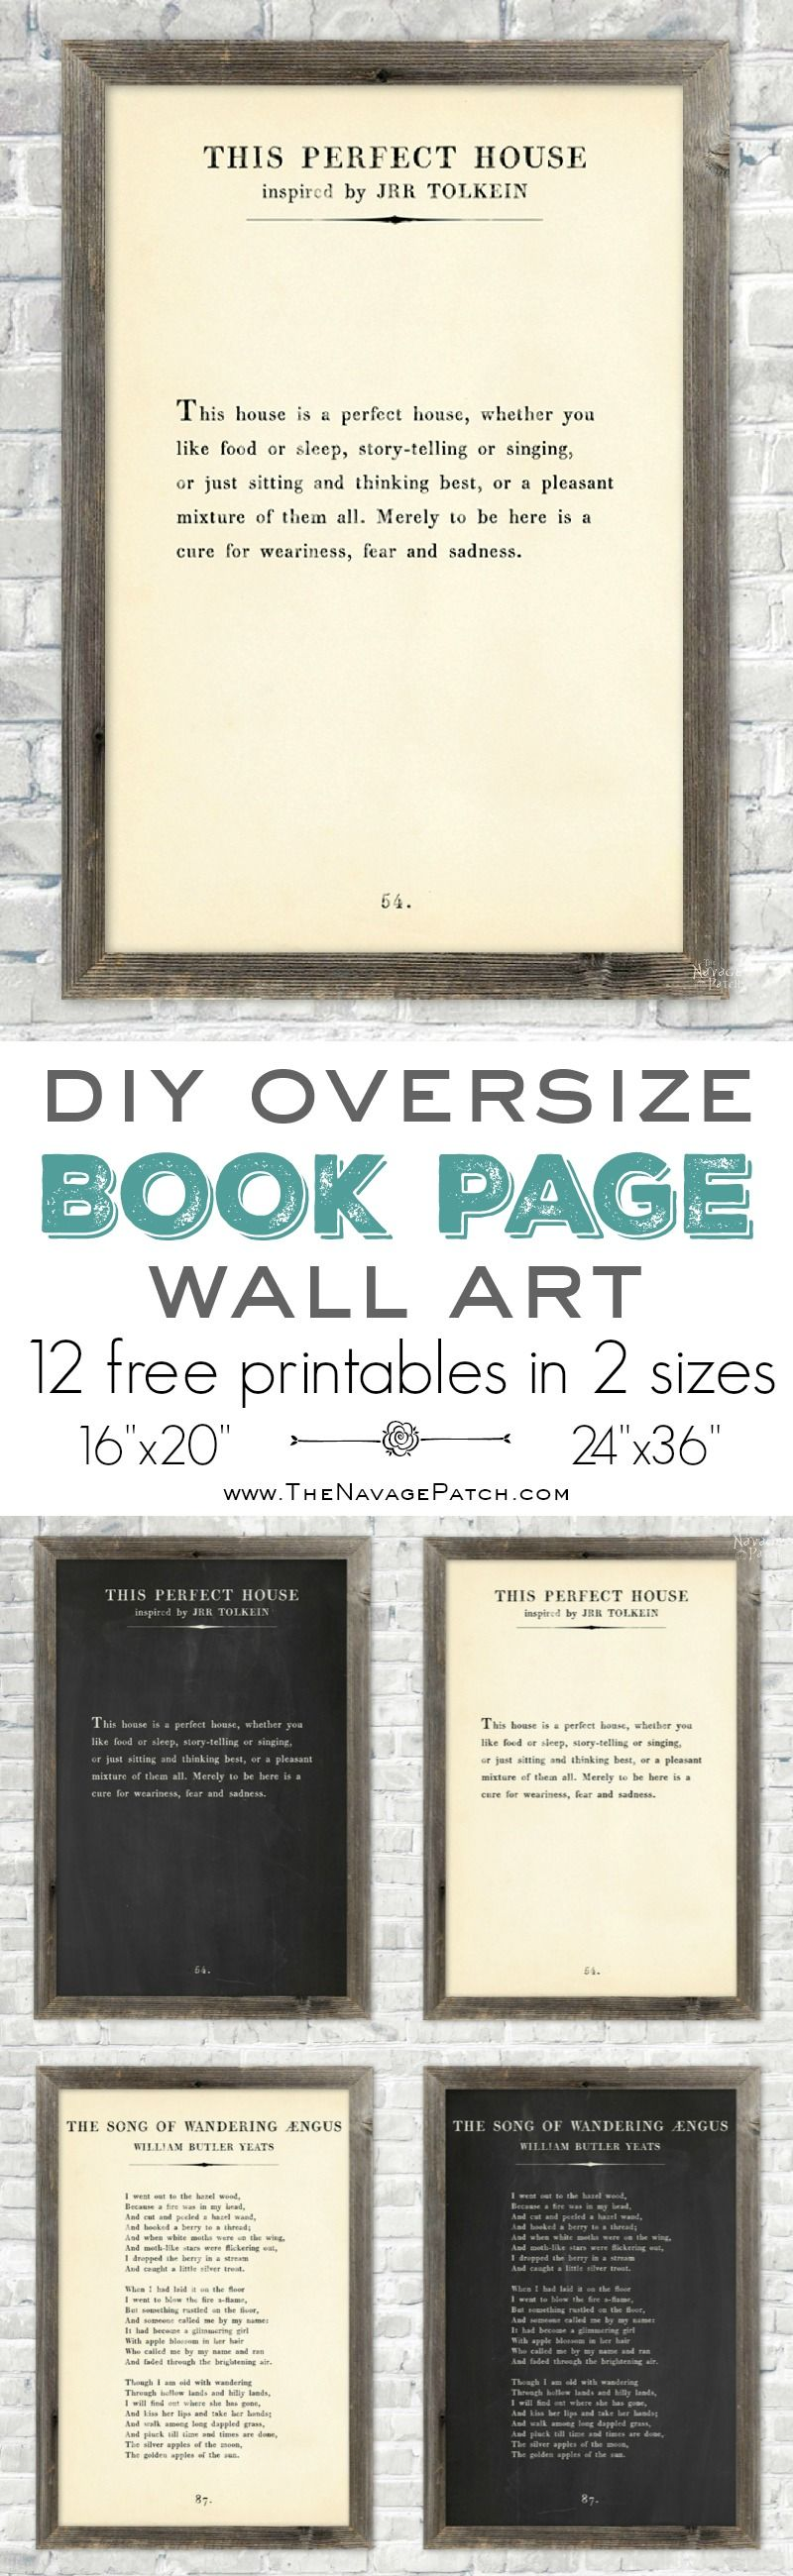 Oversize Book Page Wall Art (12 Free Printables) - TheNavagePatch.com